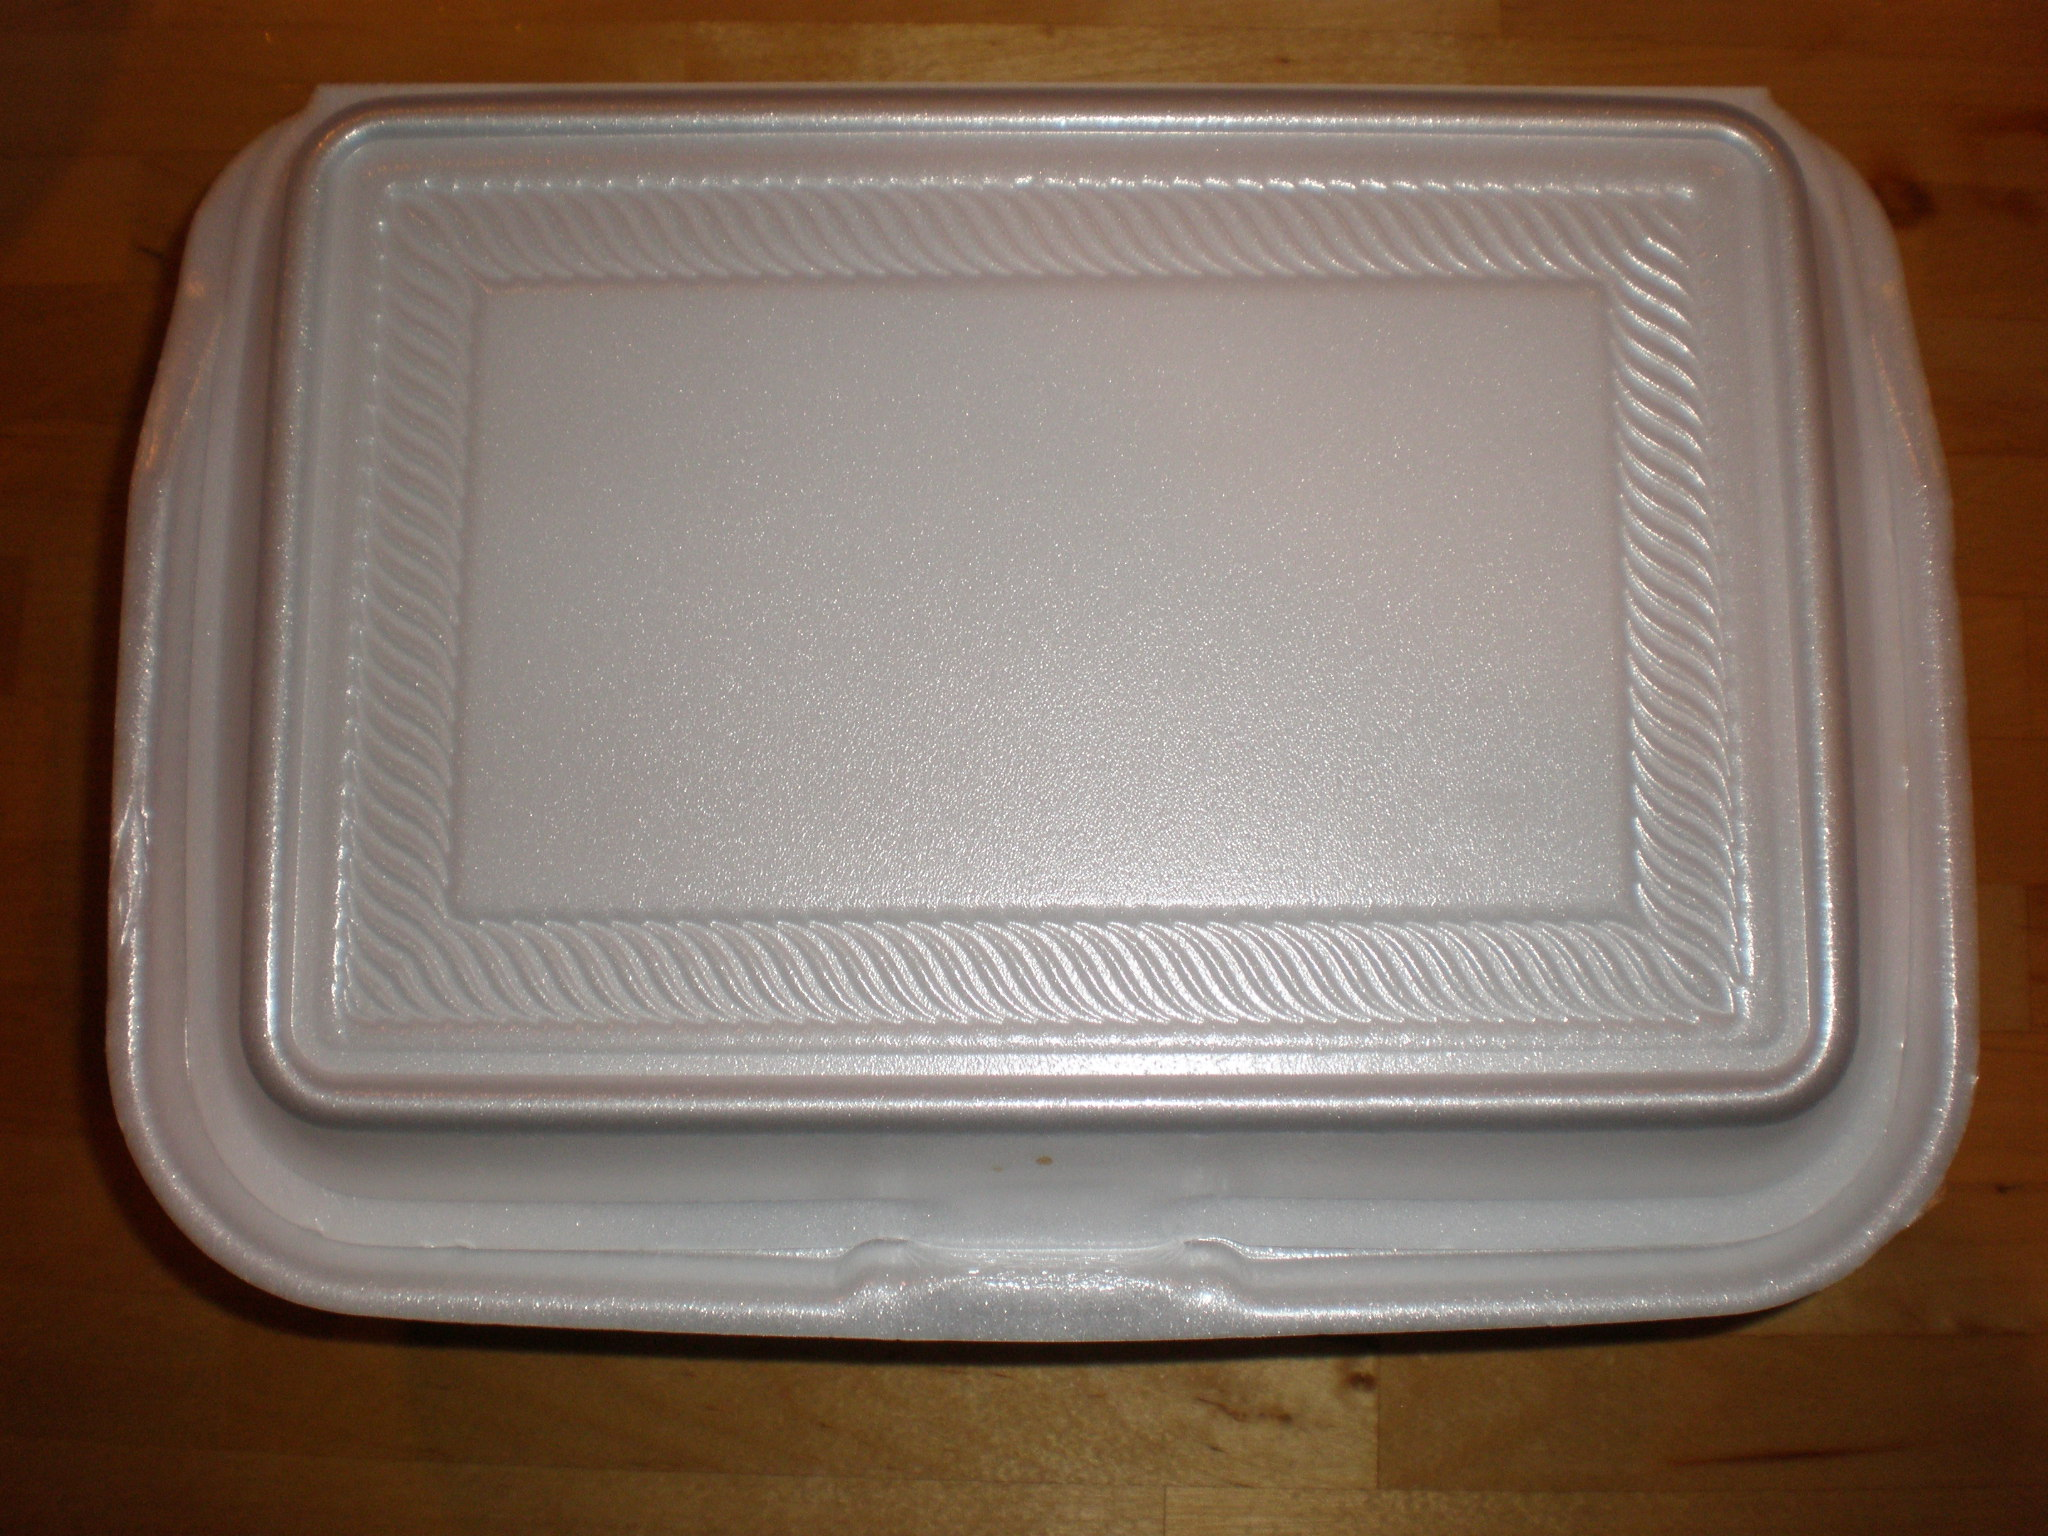 Styrofoam food box. Image: BrokenSphere